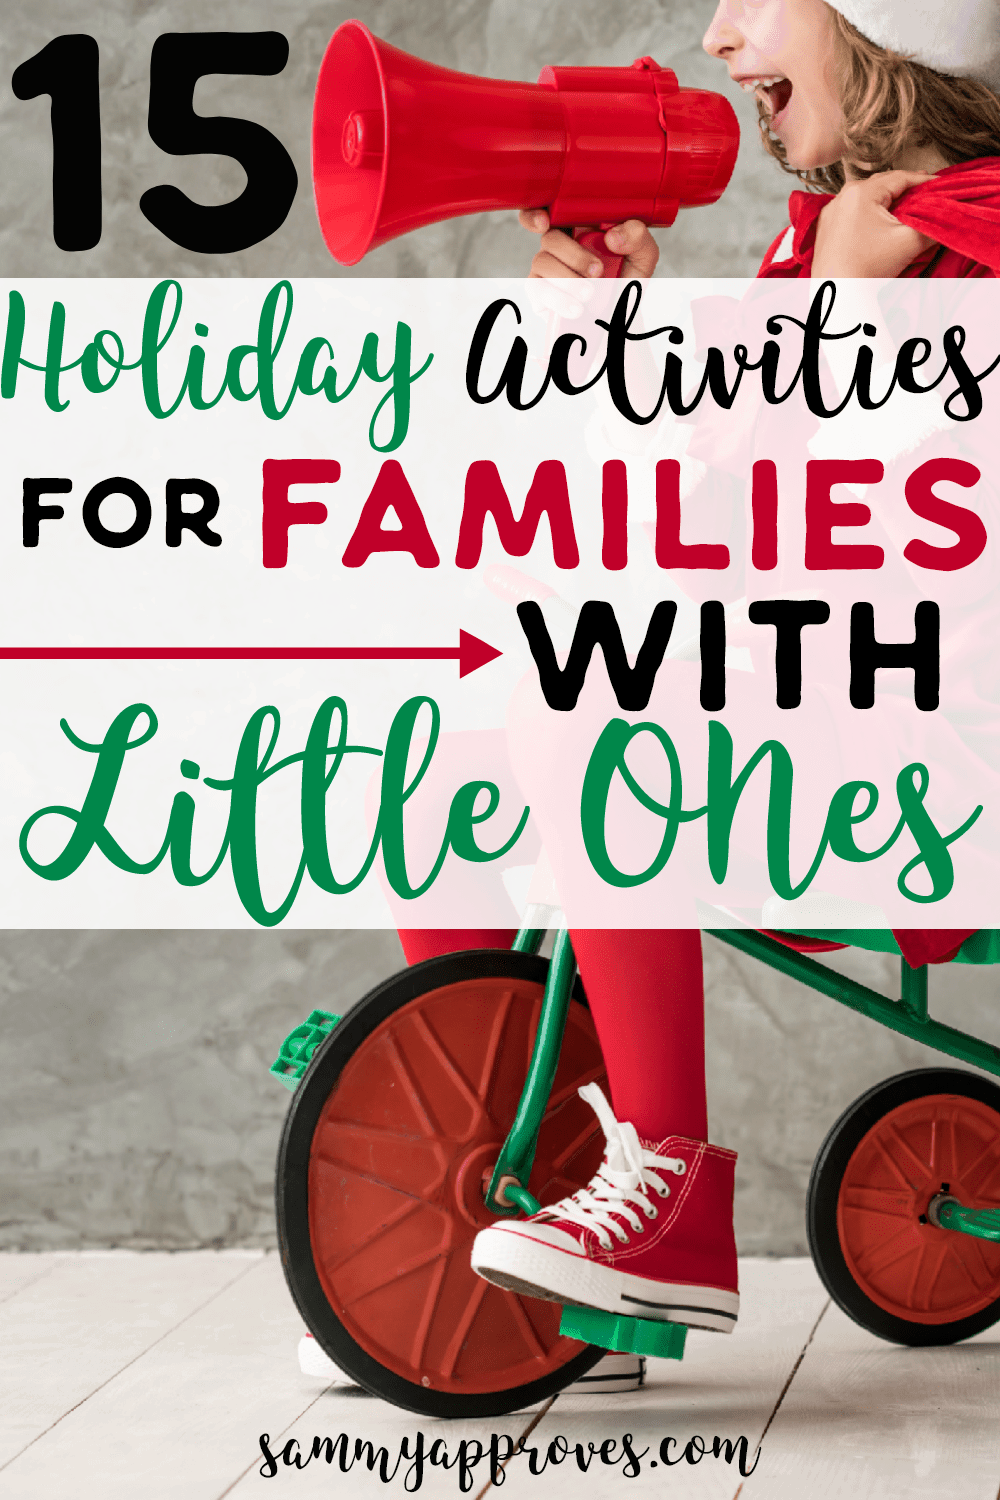 15 Holiday Activities for Families with Little Ones